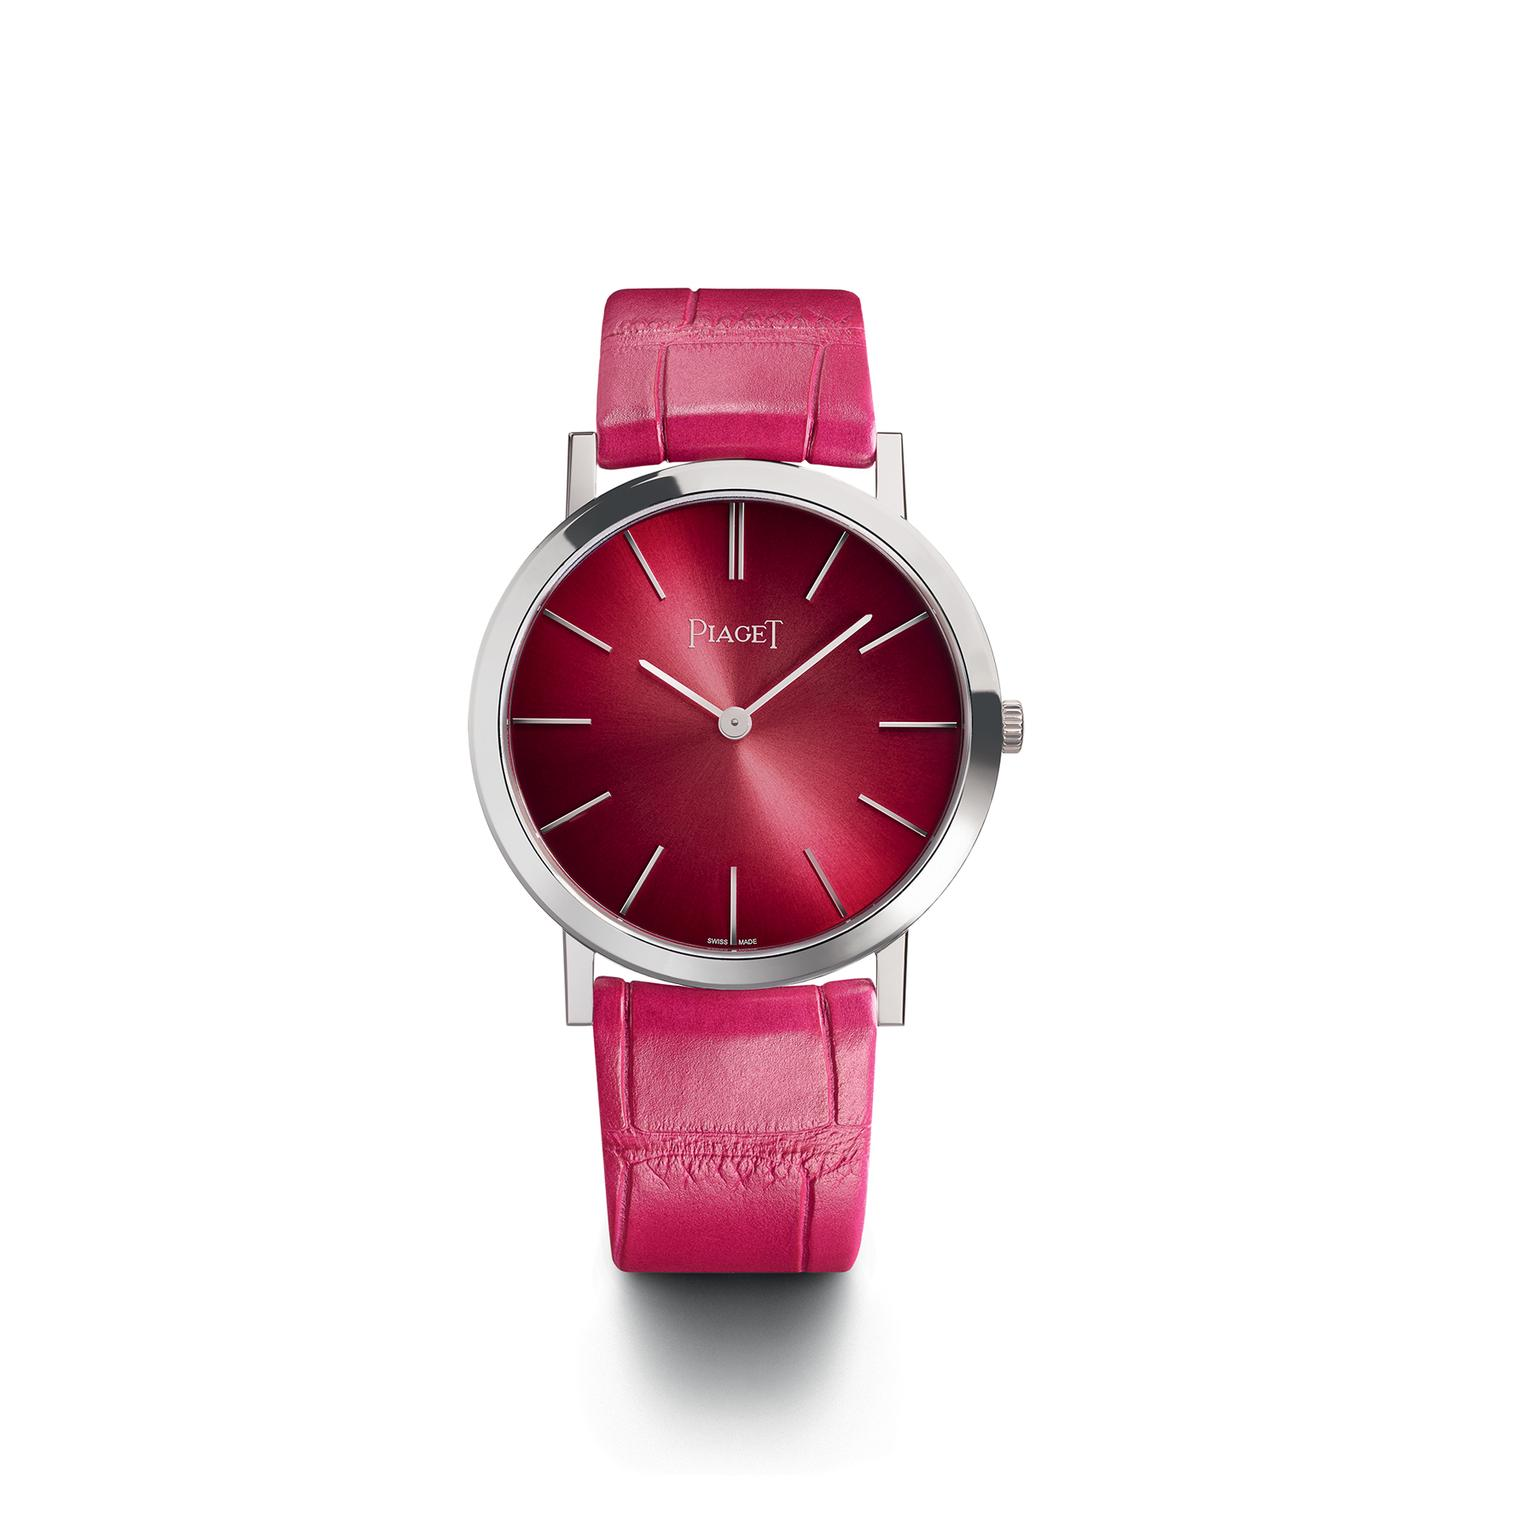 Piaget Altiplano watch in white gold with a pink dial